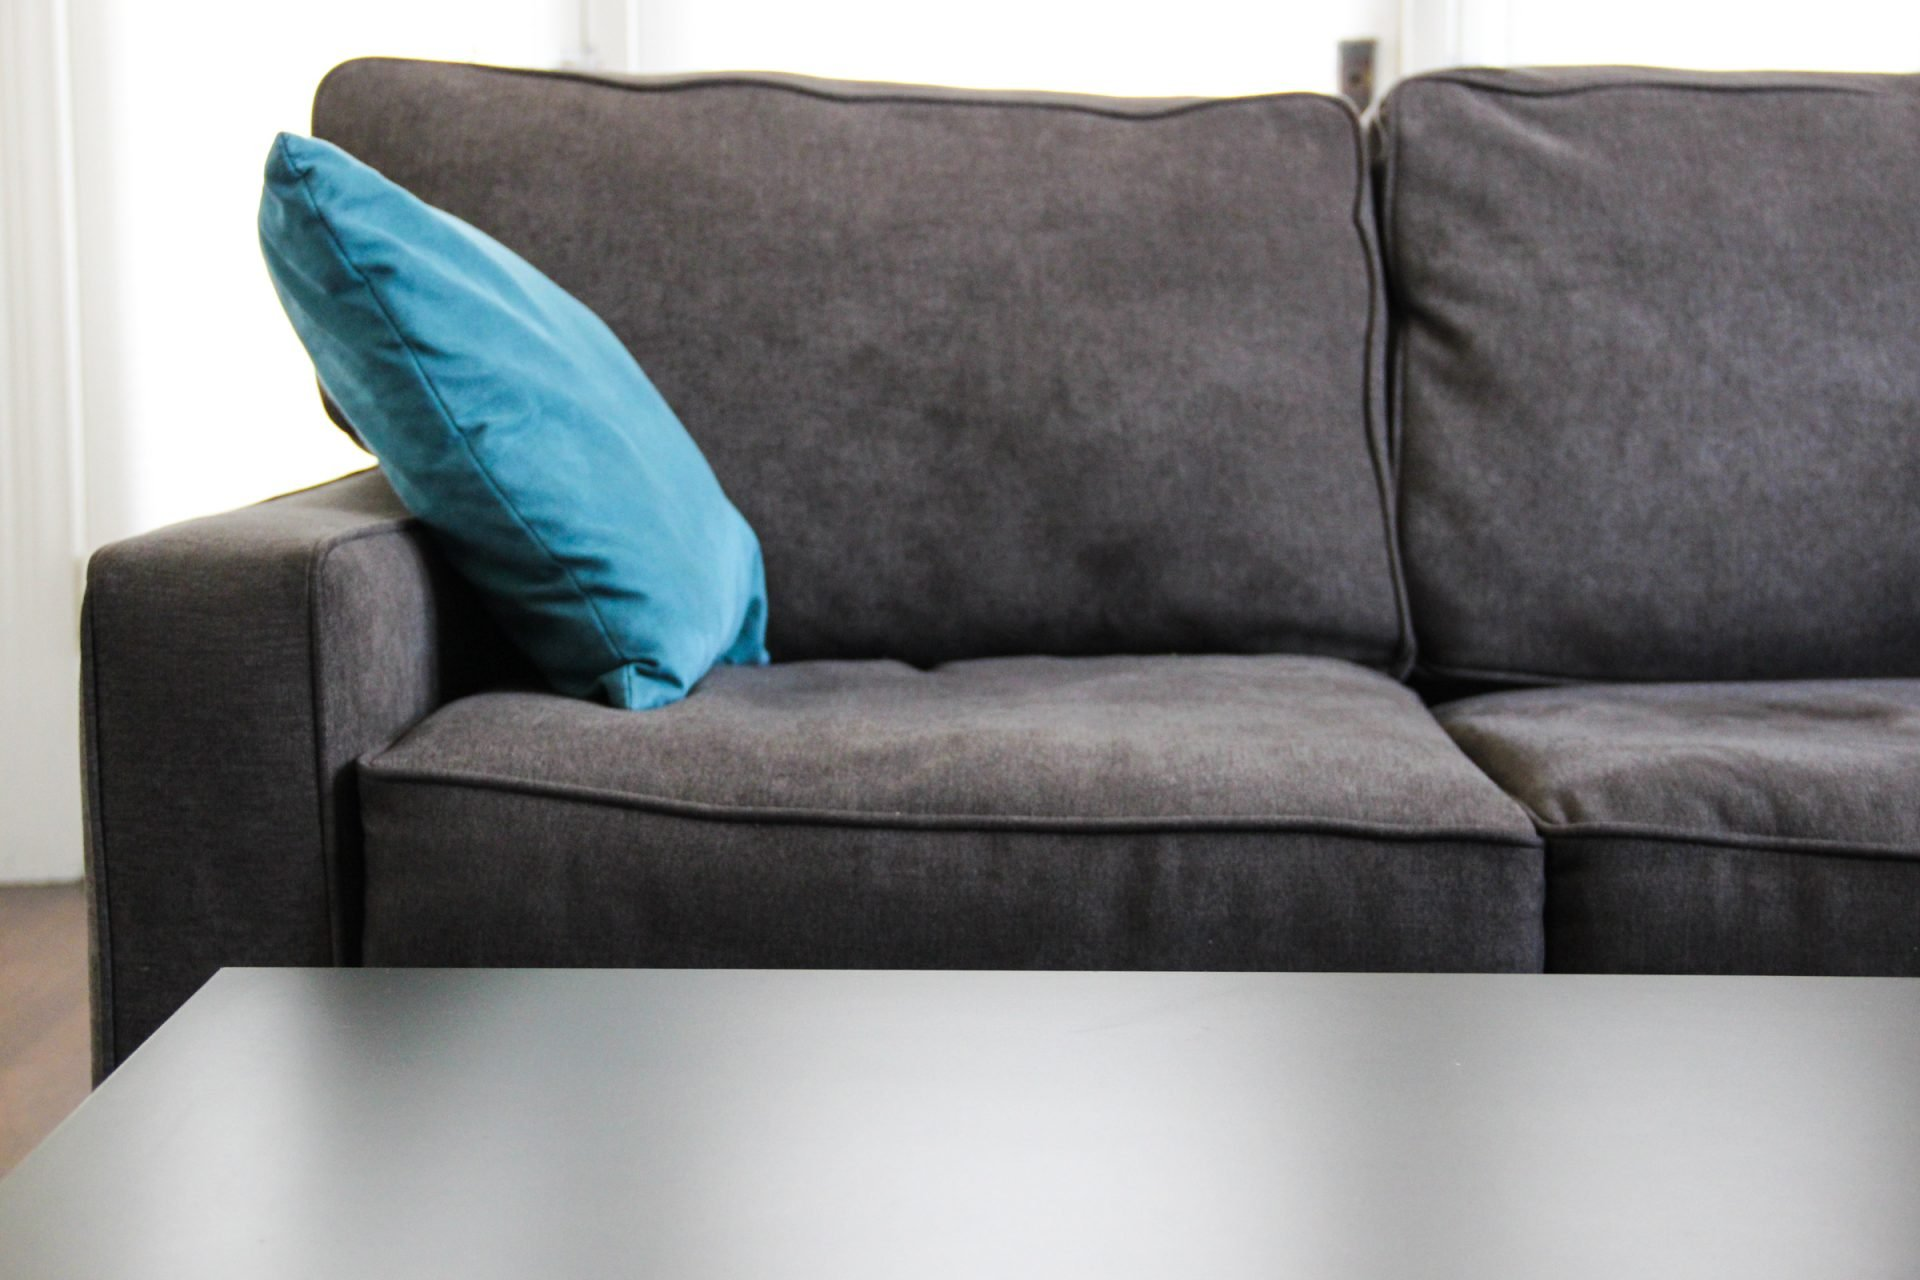 Grey Empty Couch